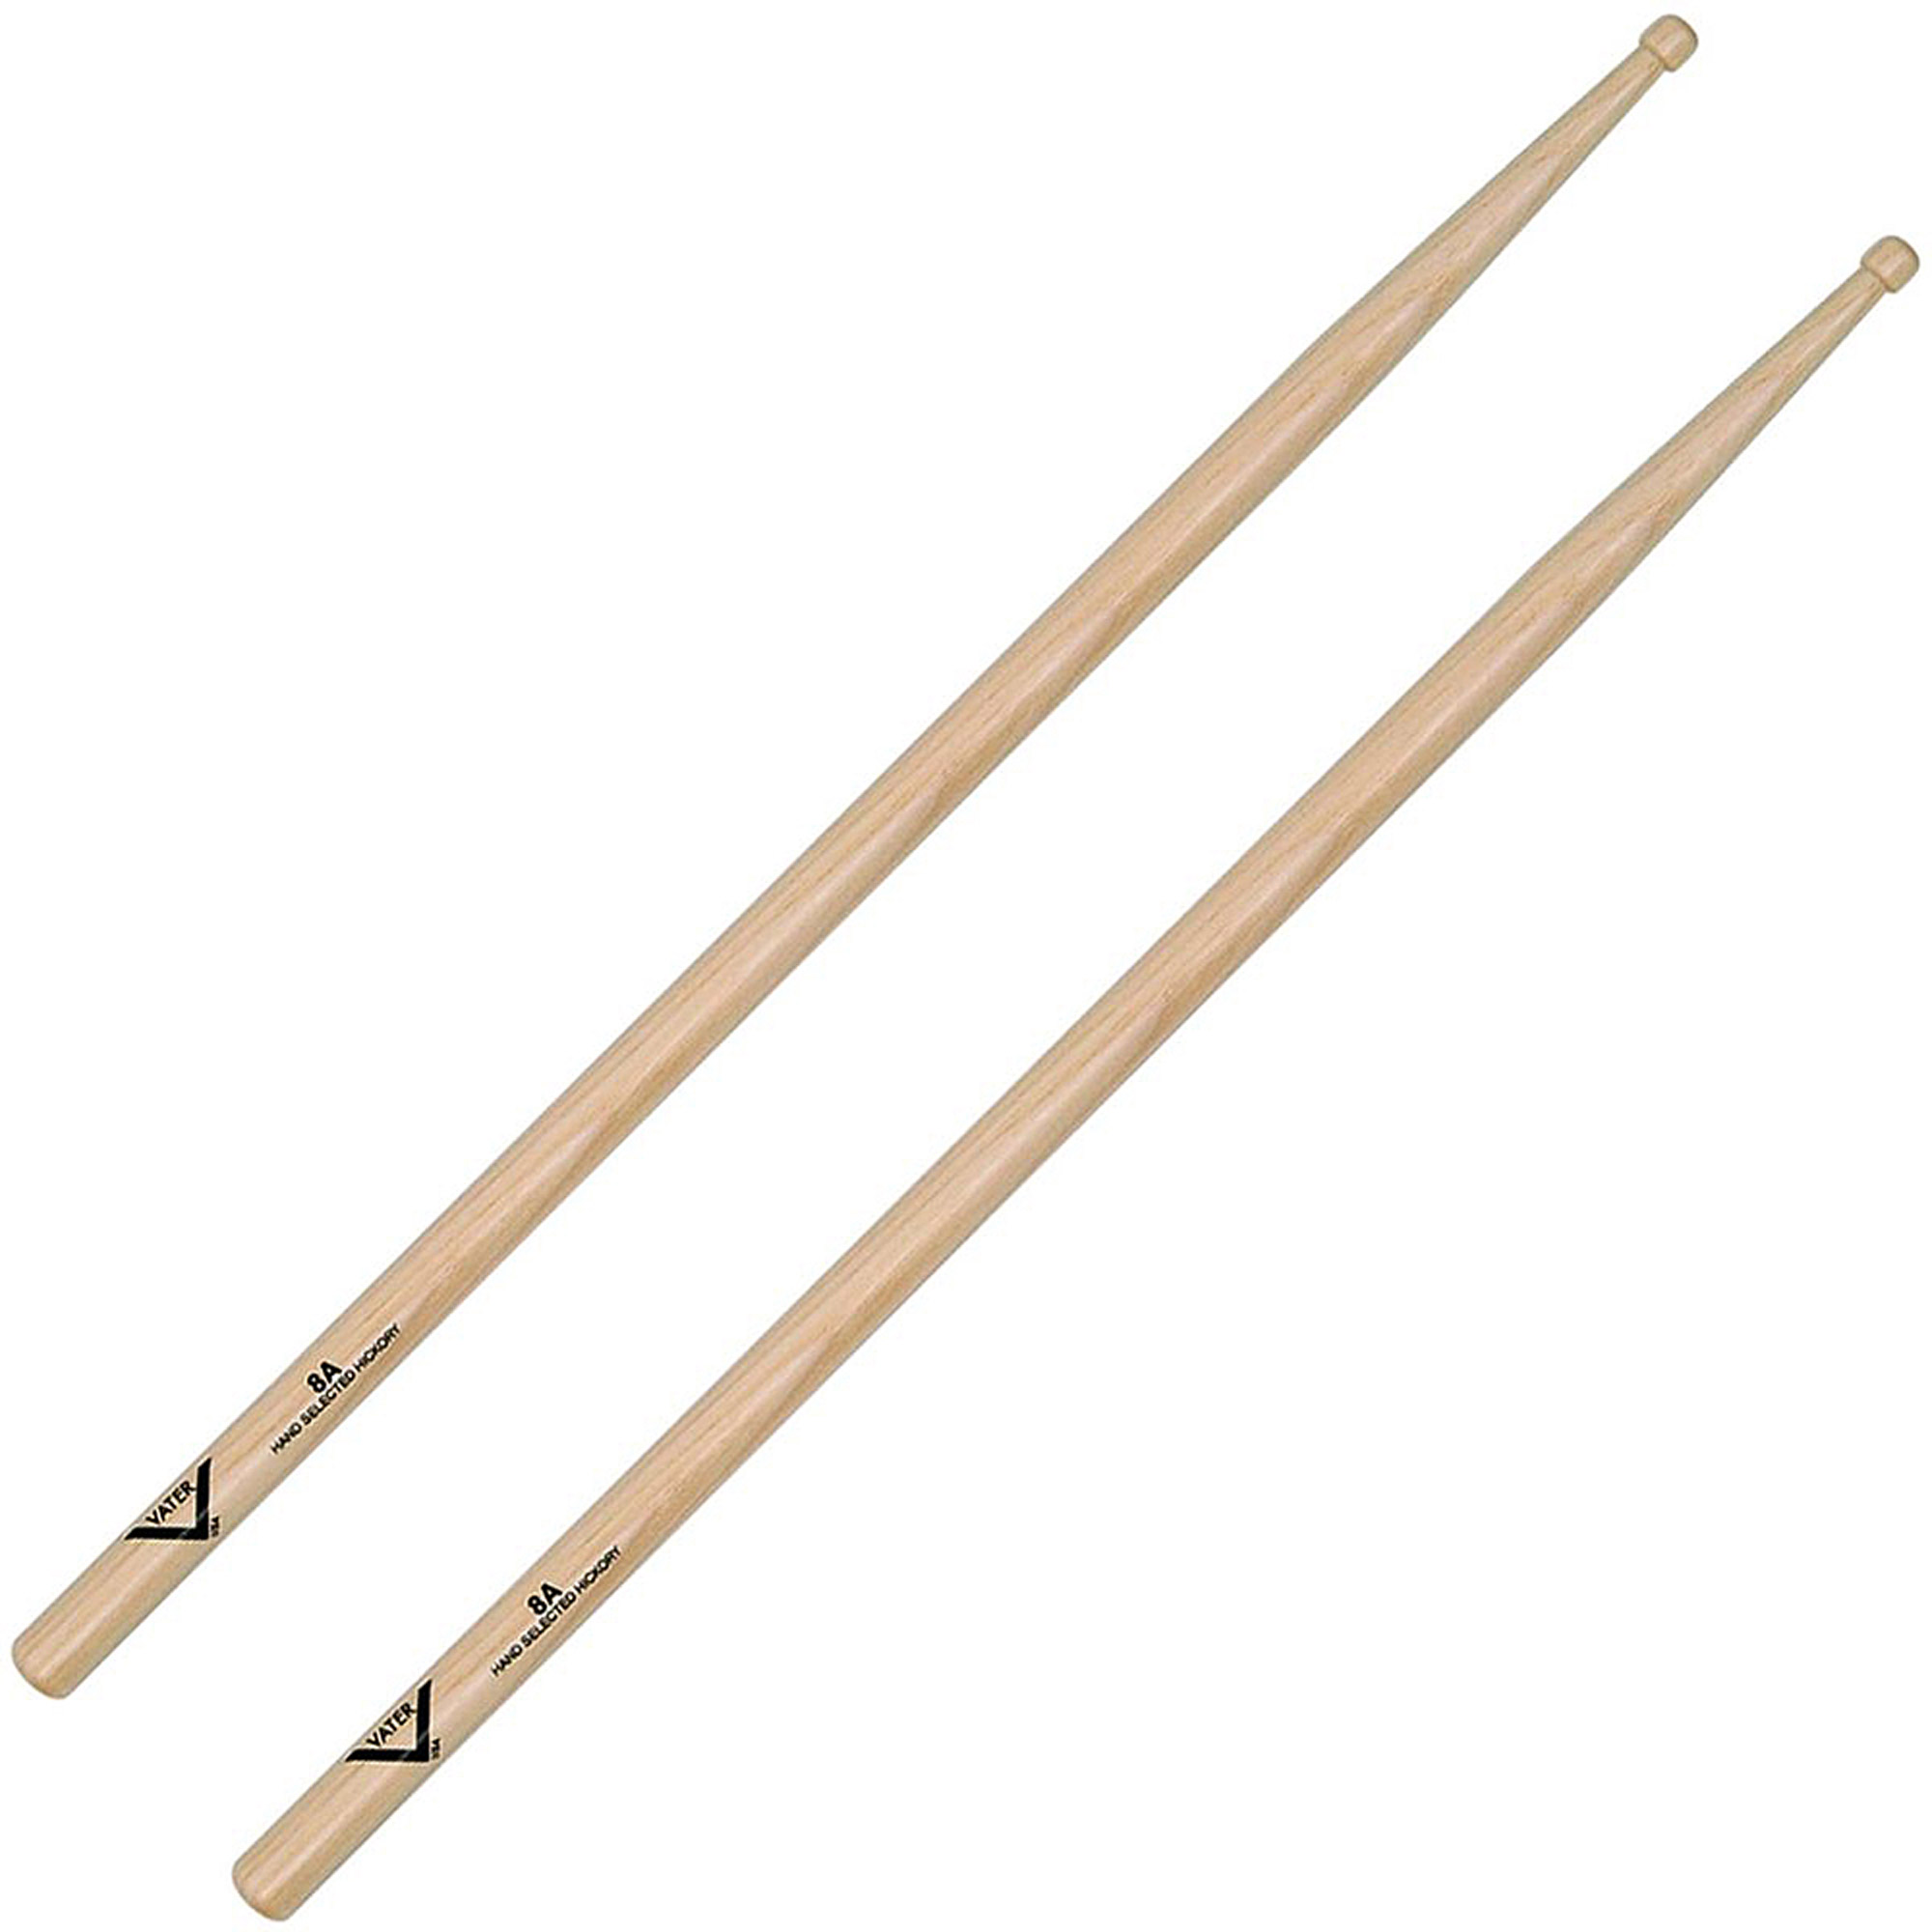 Vater American Hickory 8A Drumsticks Wood by Vater